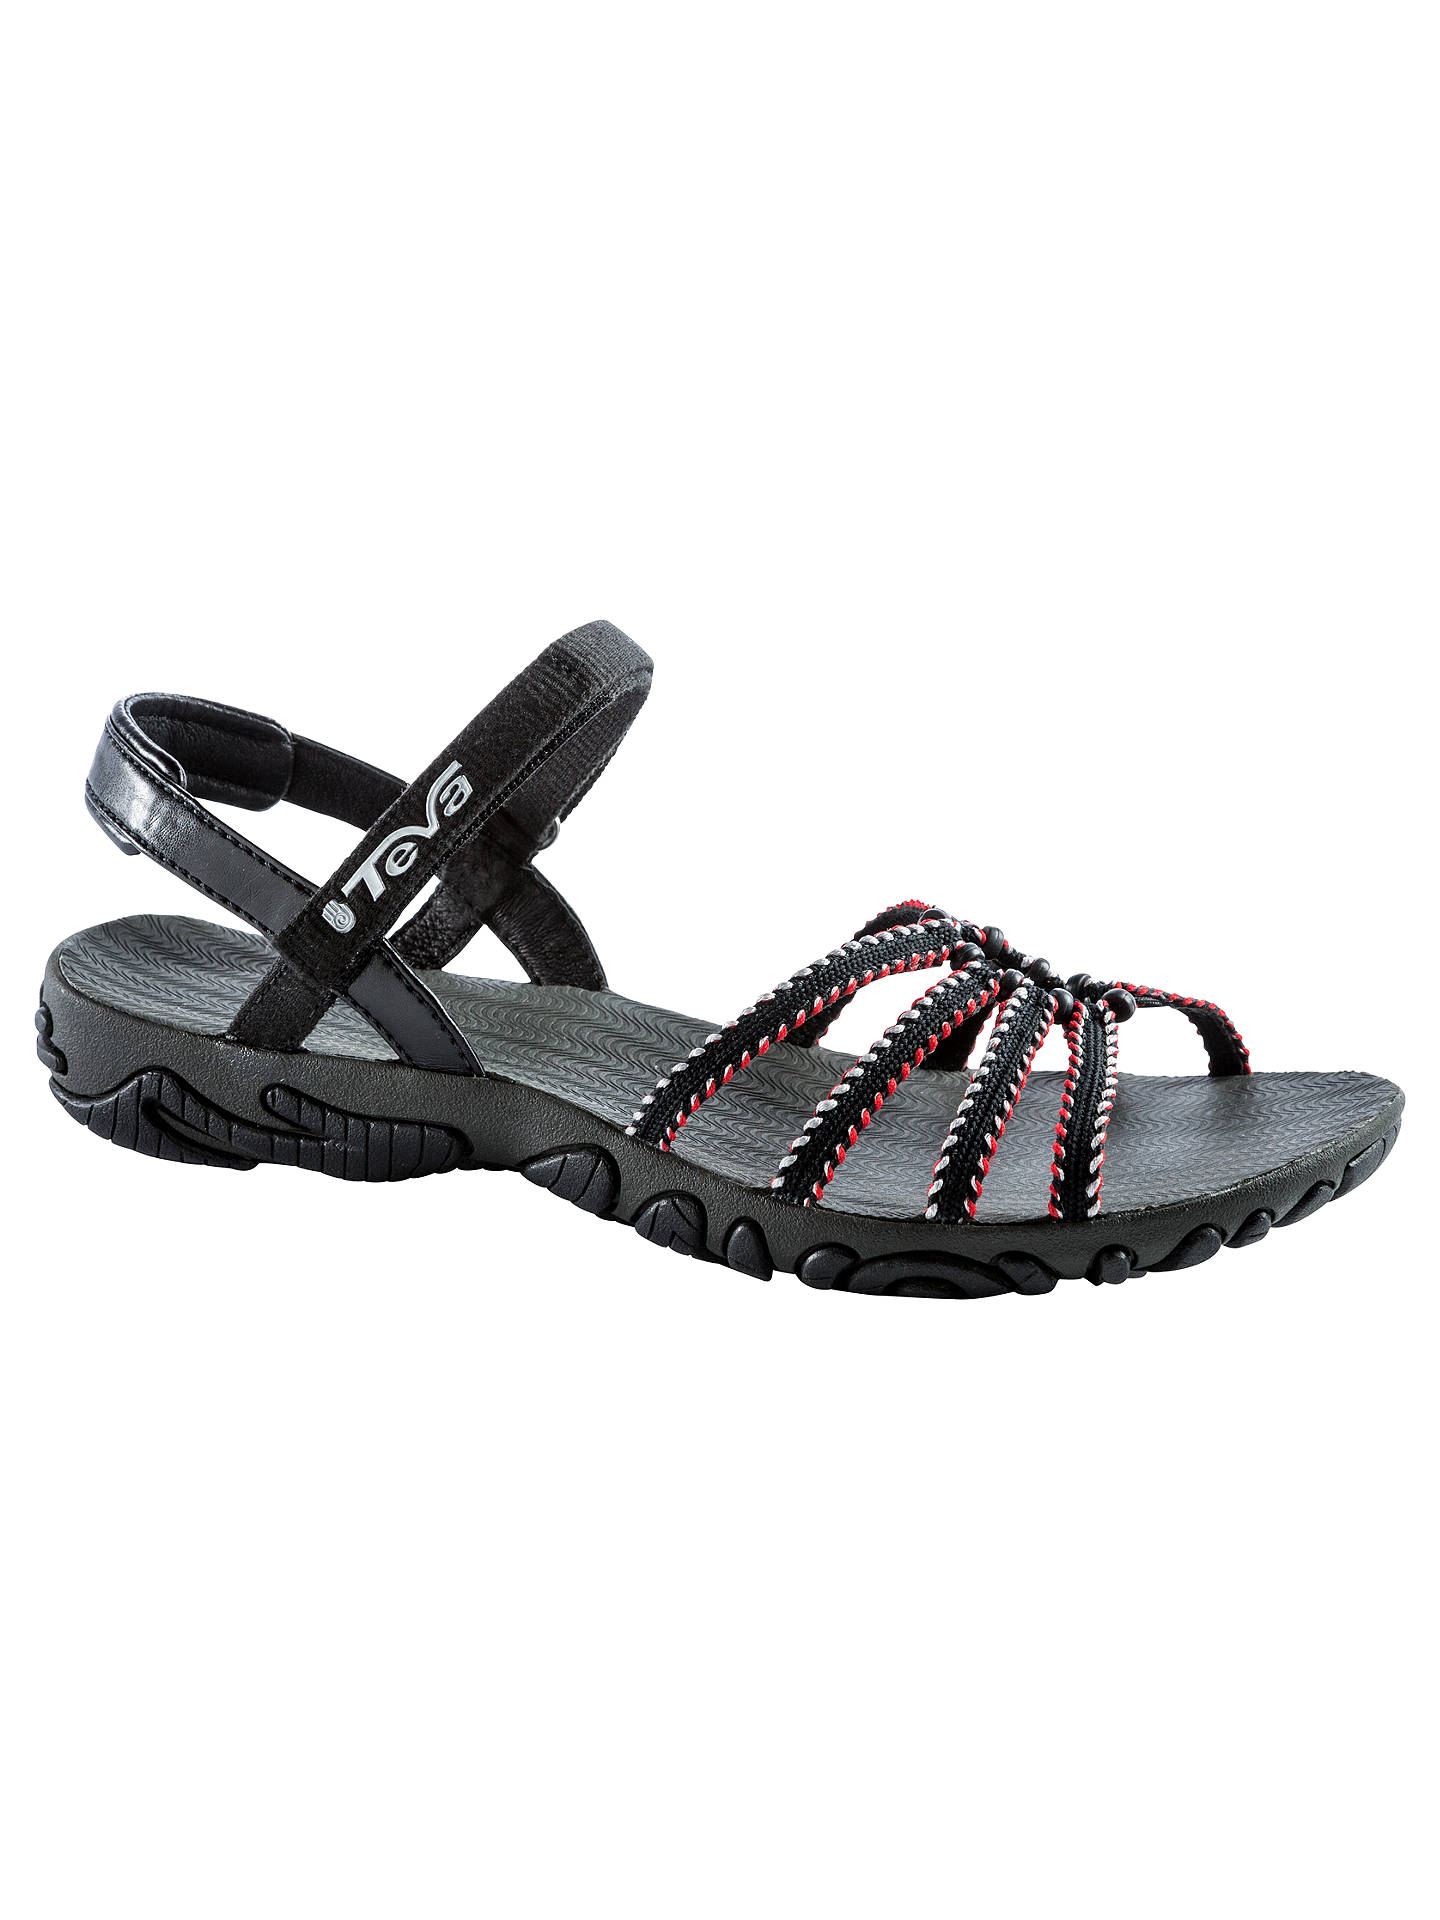 a7585127dae8 Teva Kayenta Dream Weave Women s Sandals at John Lewis   Partners